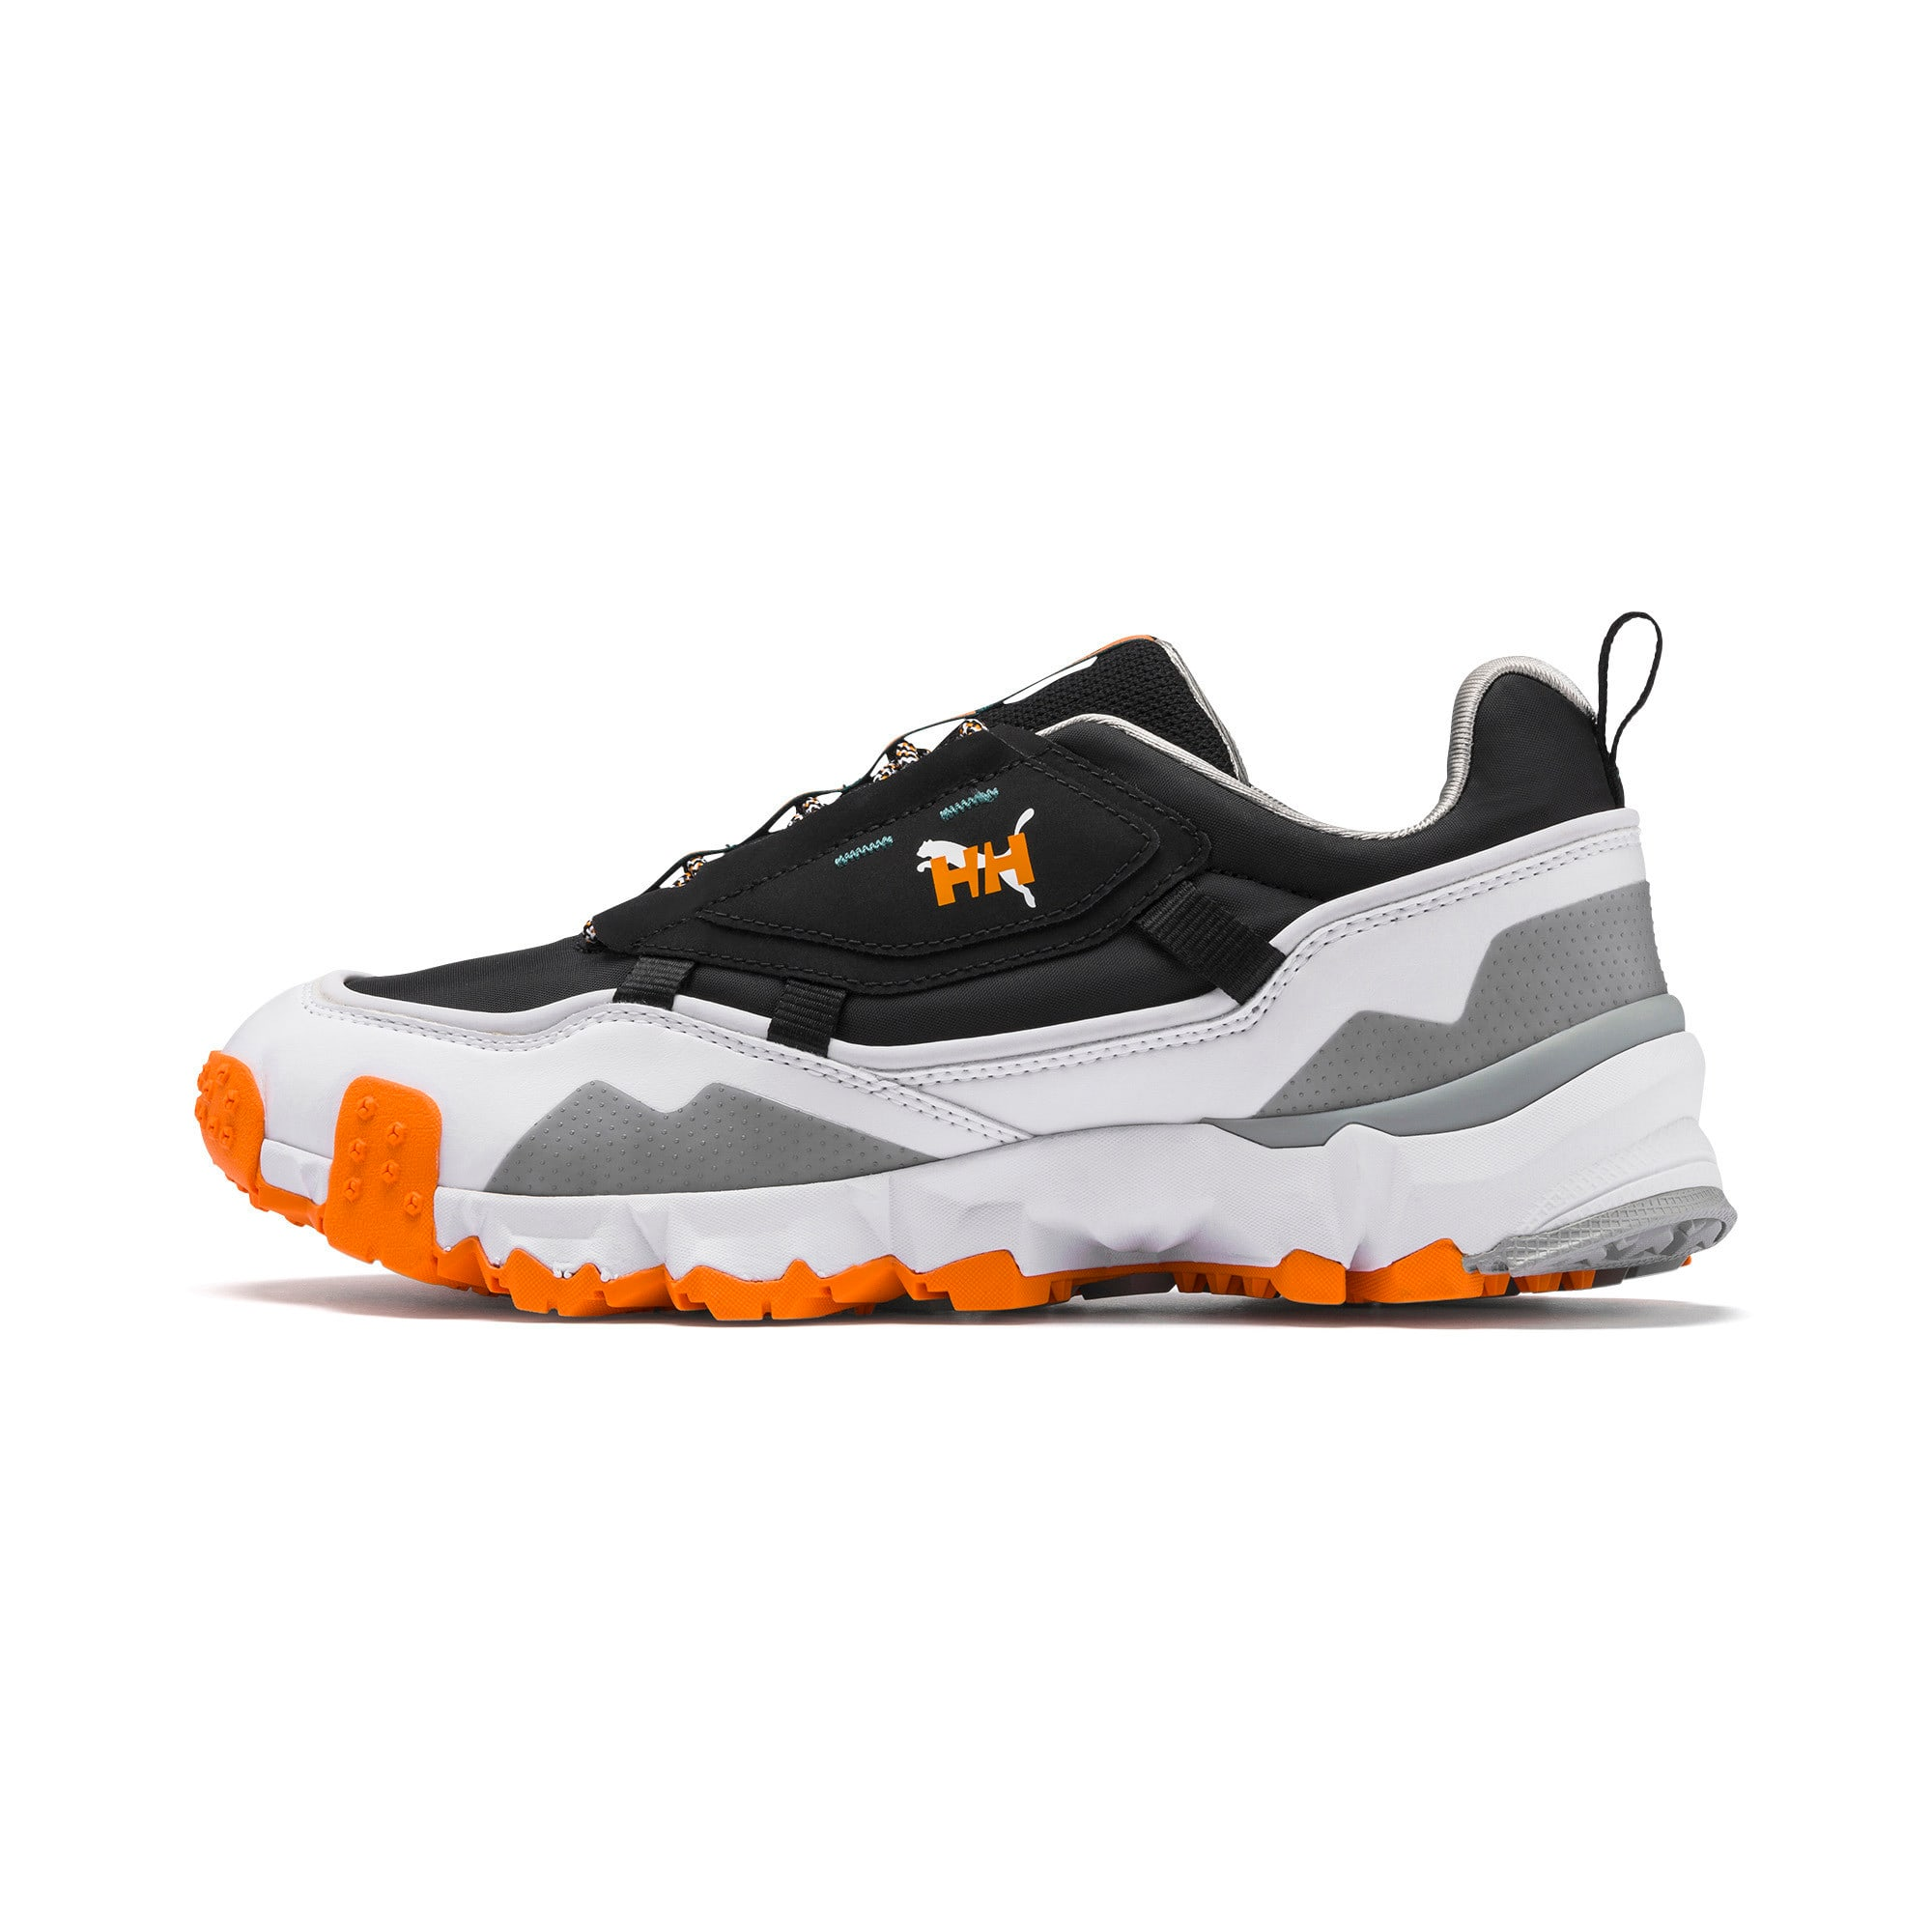 Thumbnail 1 of PUMA x HELLY HANSEN Trailfox Training Shoes, Puma Black, medium